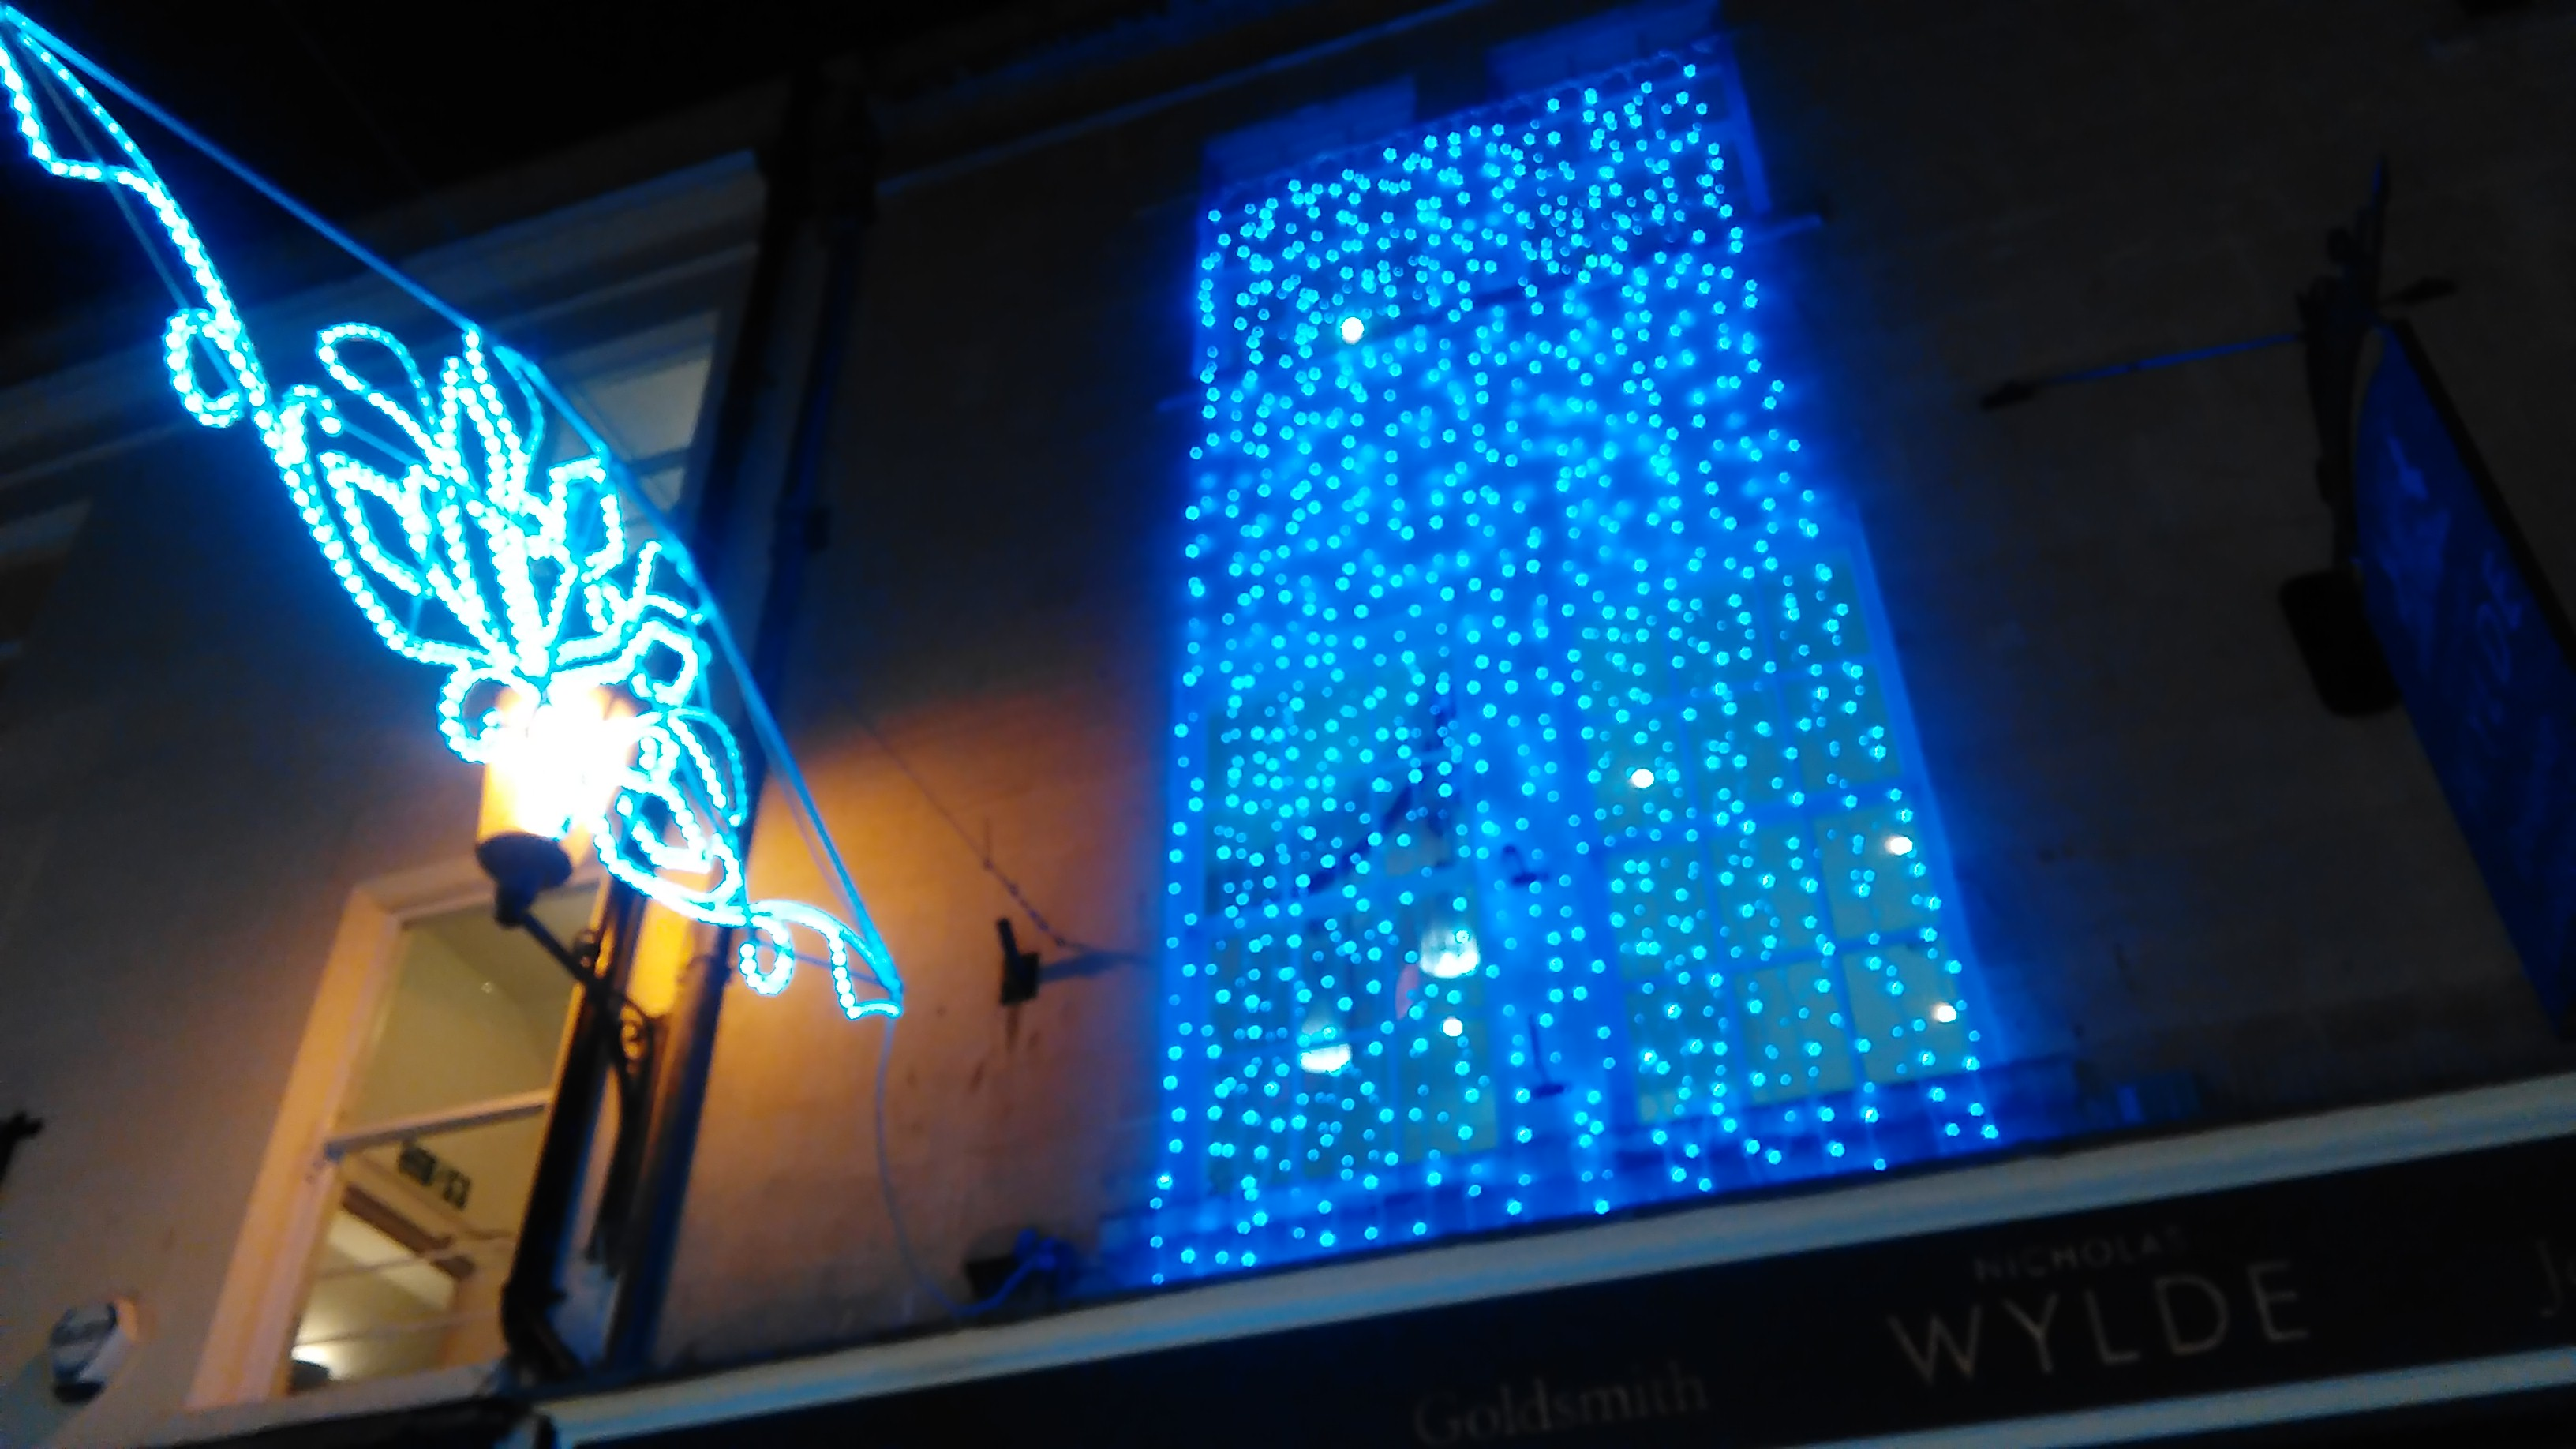 Let our 'Blue Light Waterfall' guide you!